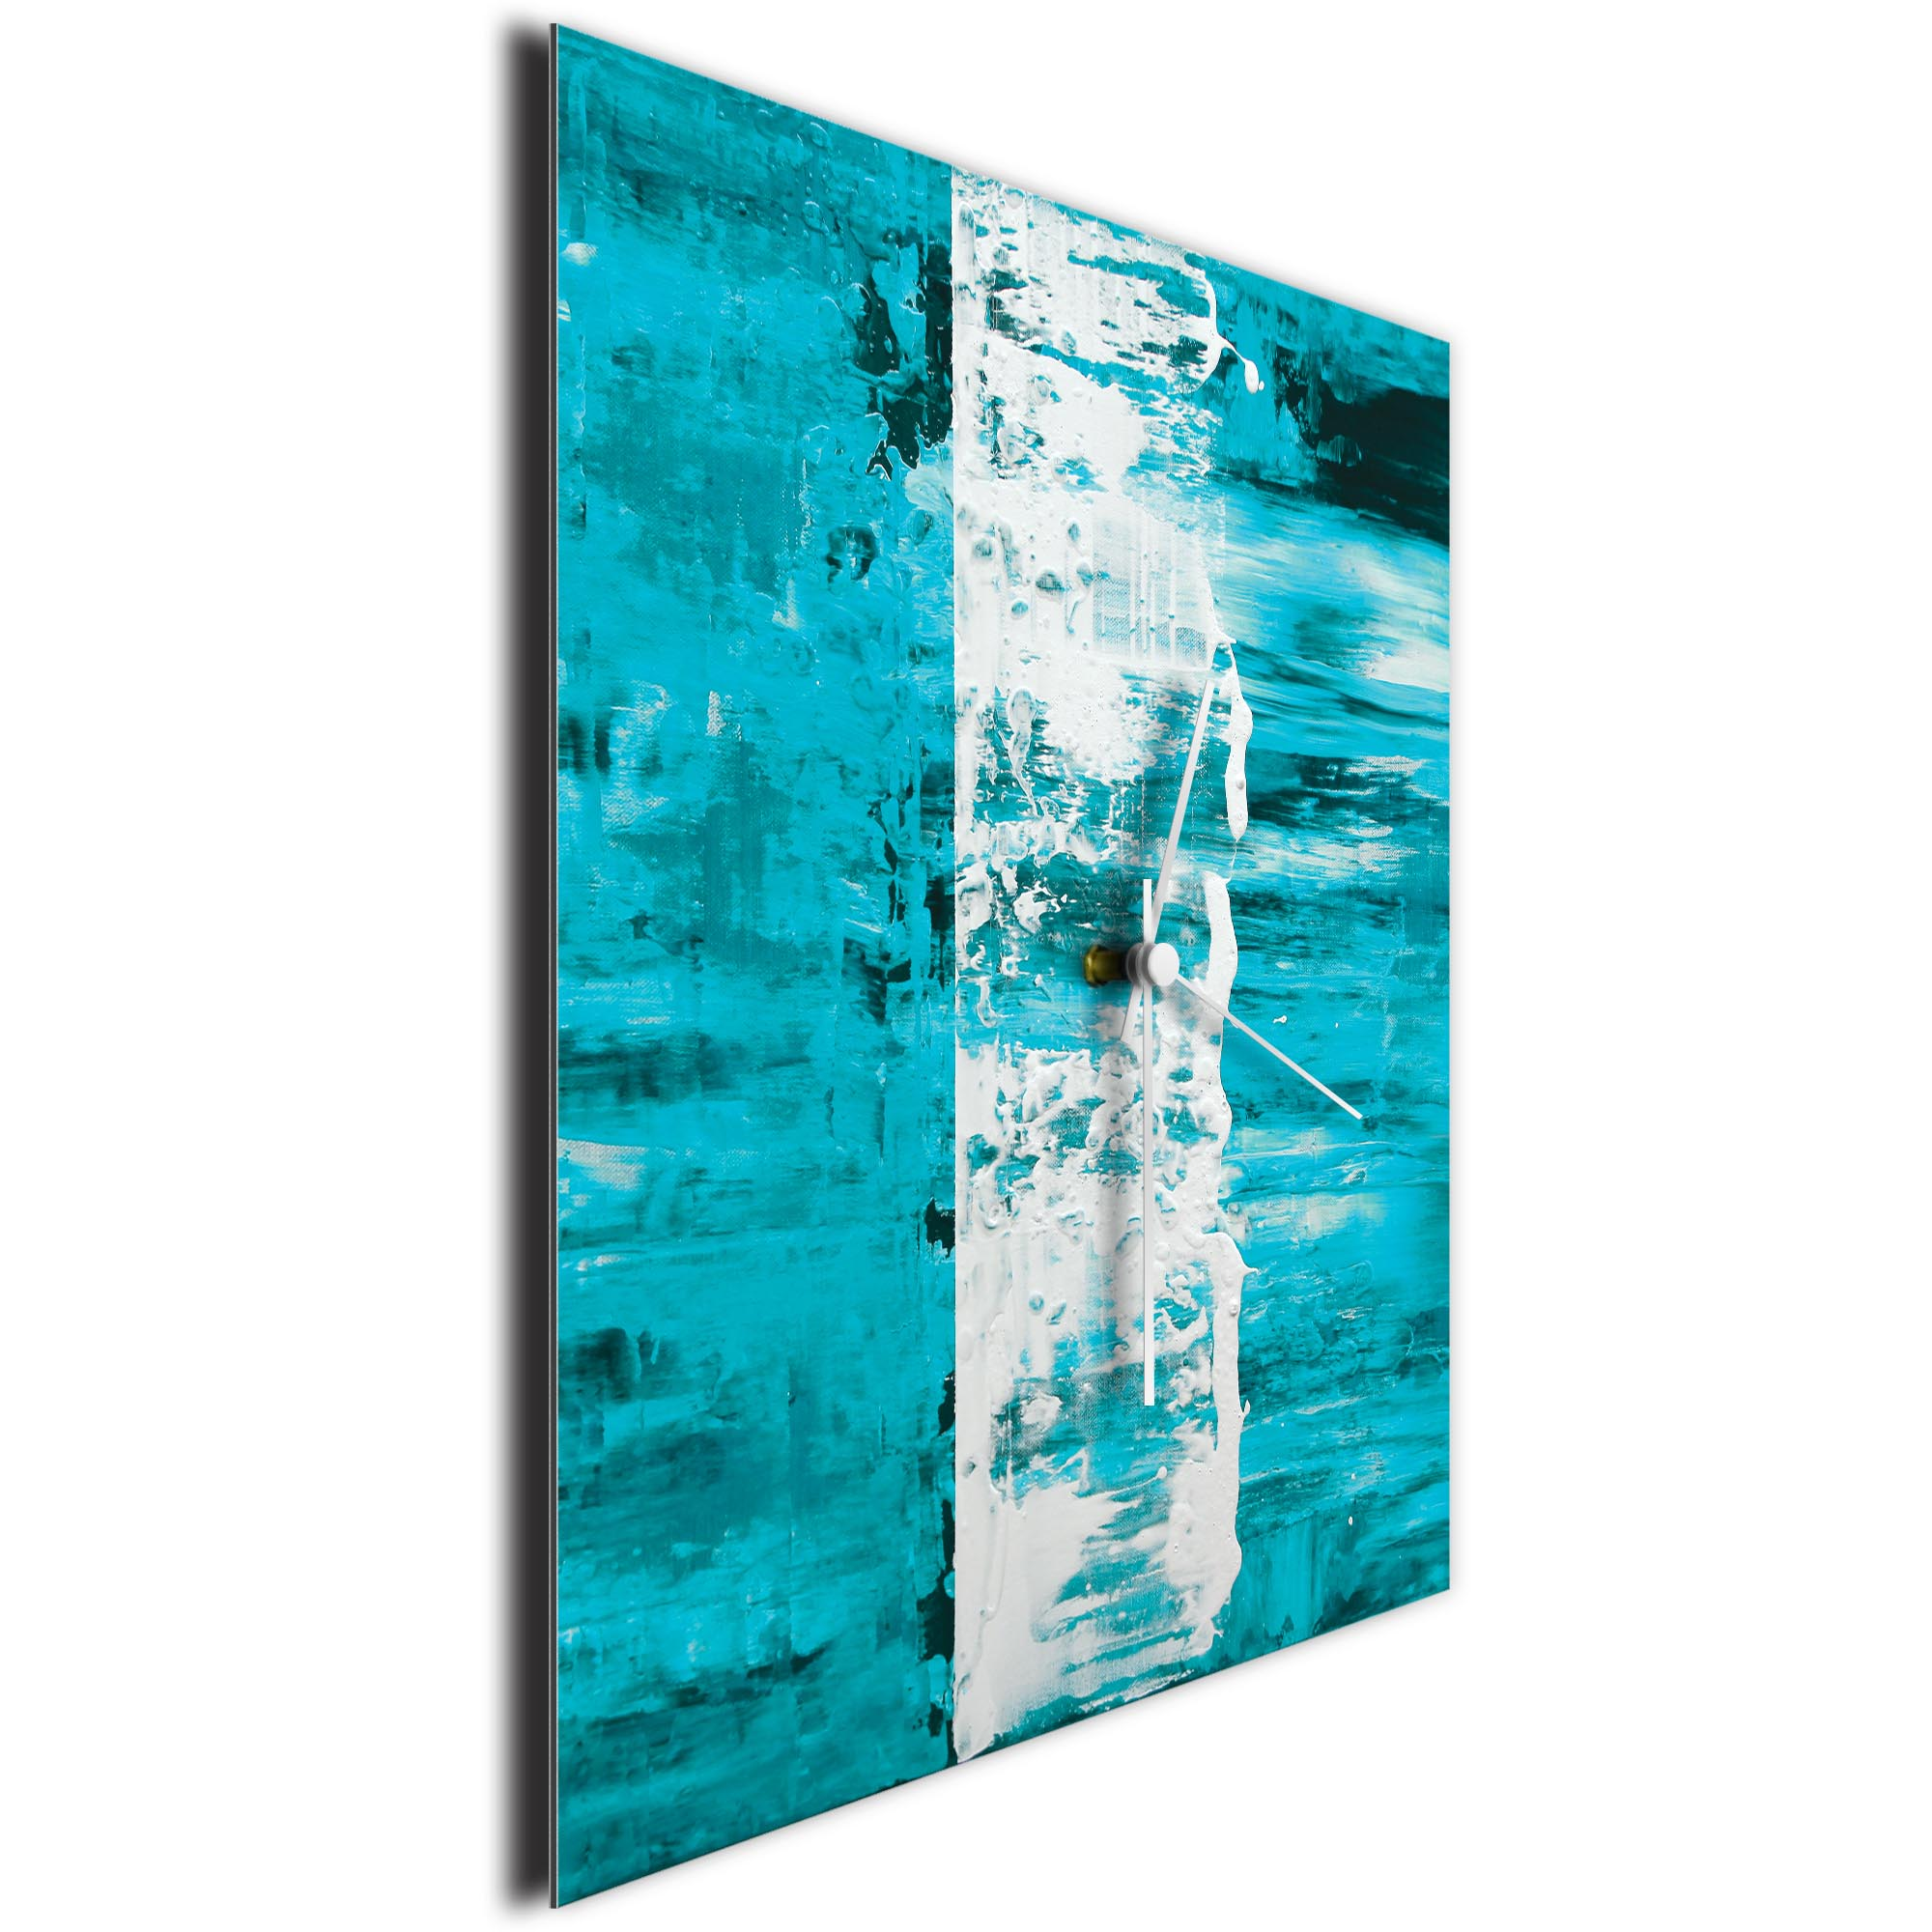 Teal Street Square Clock Large by Mendo Vasilevski - Urban Abstract Home Decor - Image 3